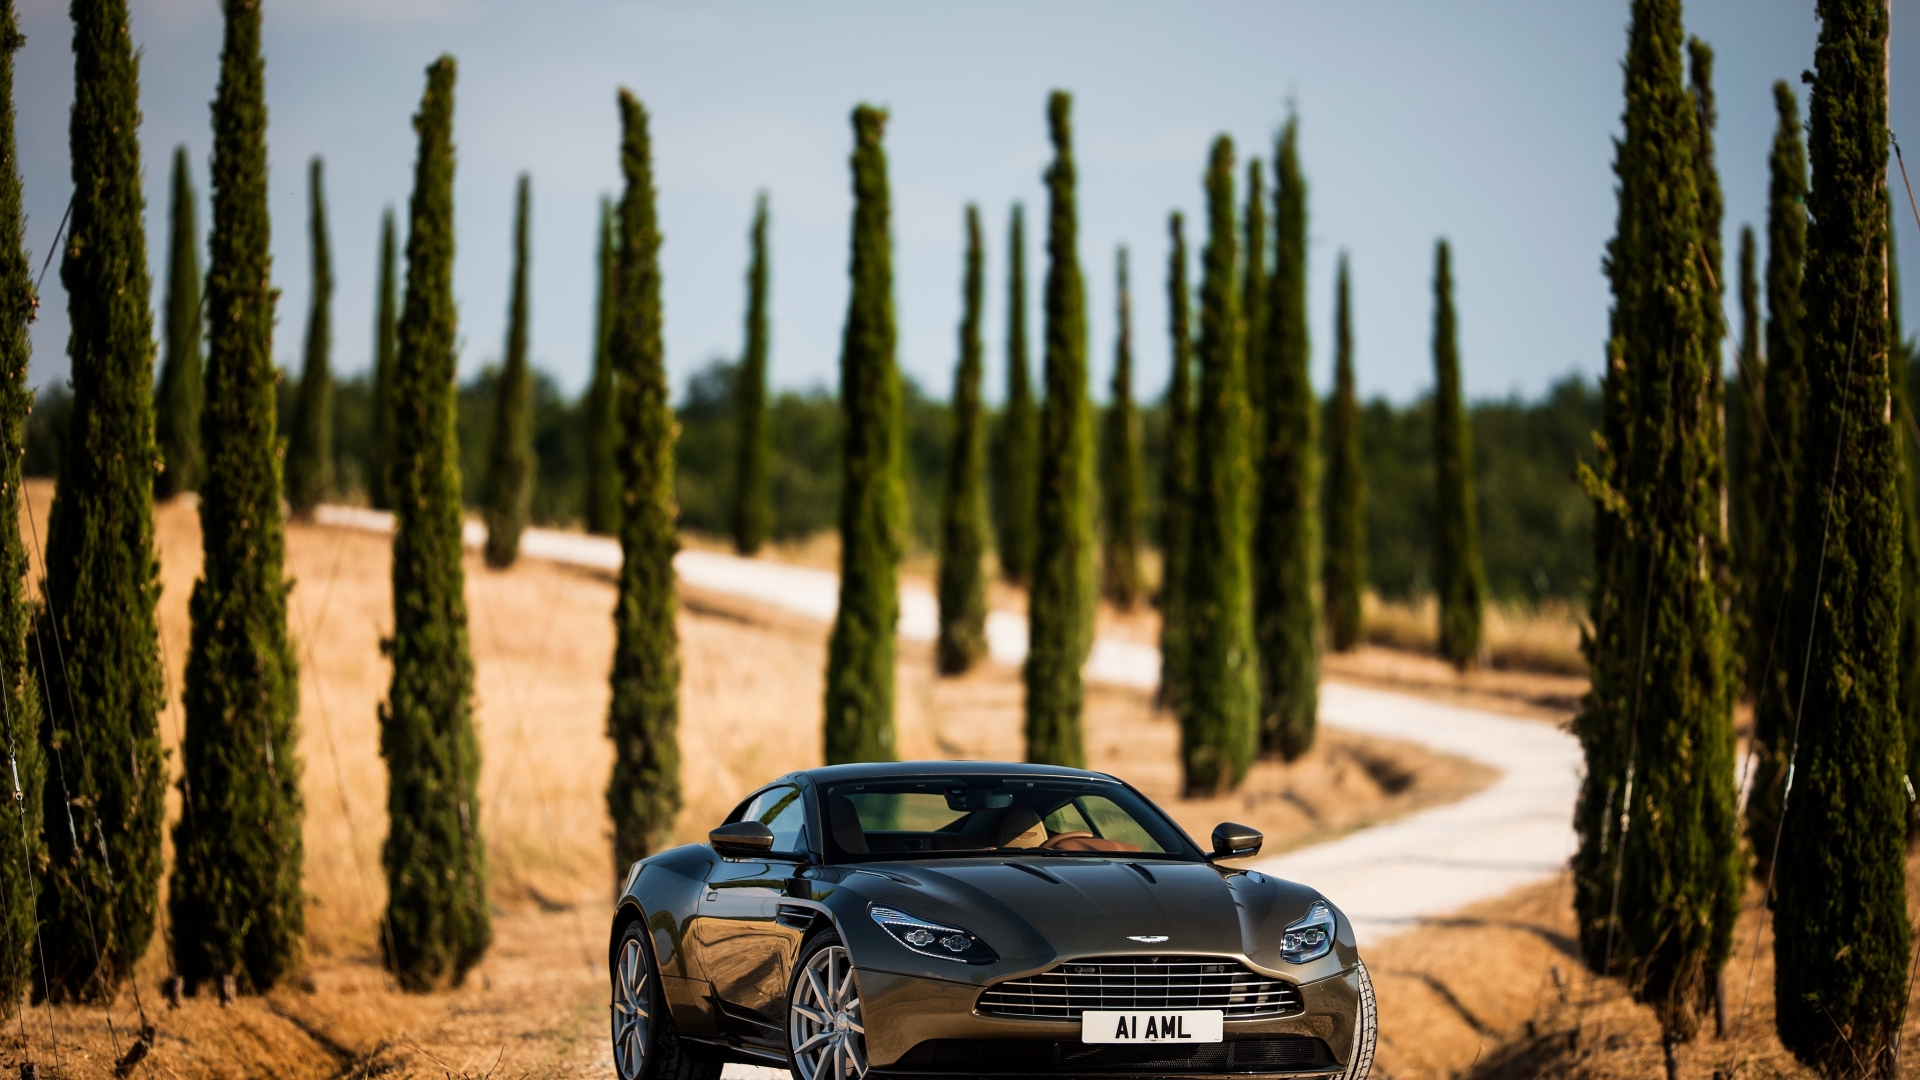 1920x1080 Aston Martin Db1 Front View 1080p Laptop Full Hd